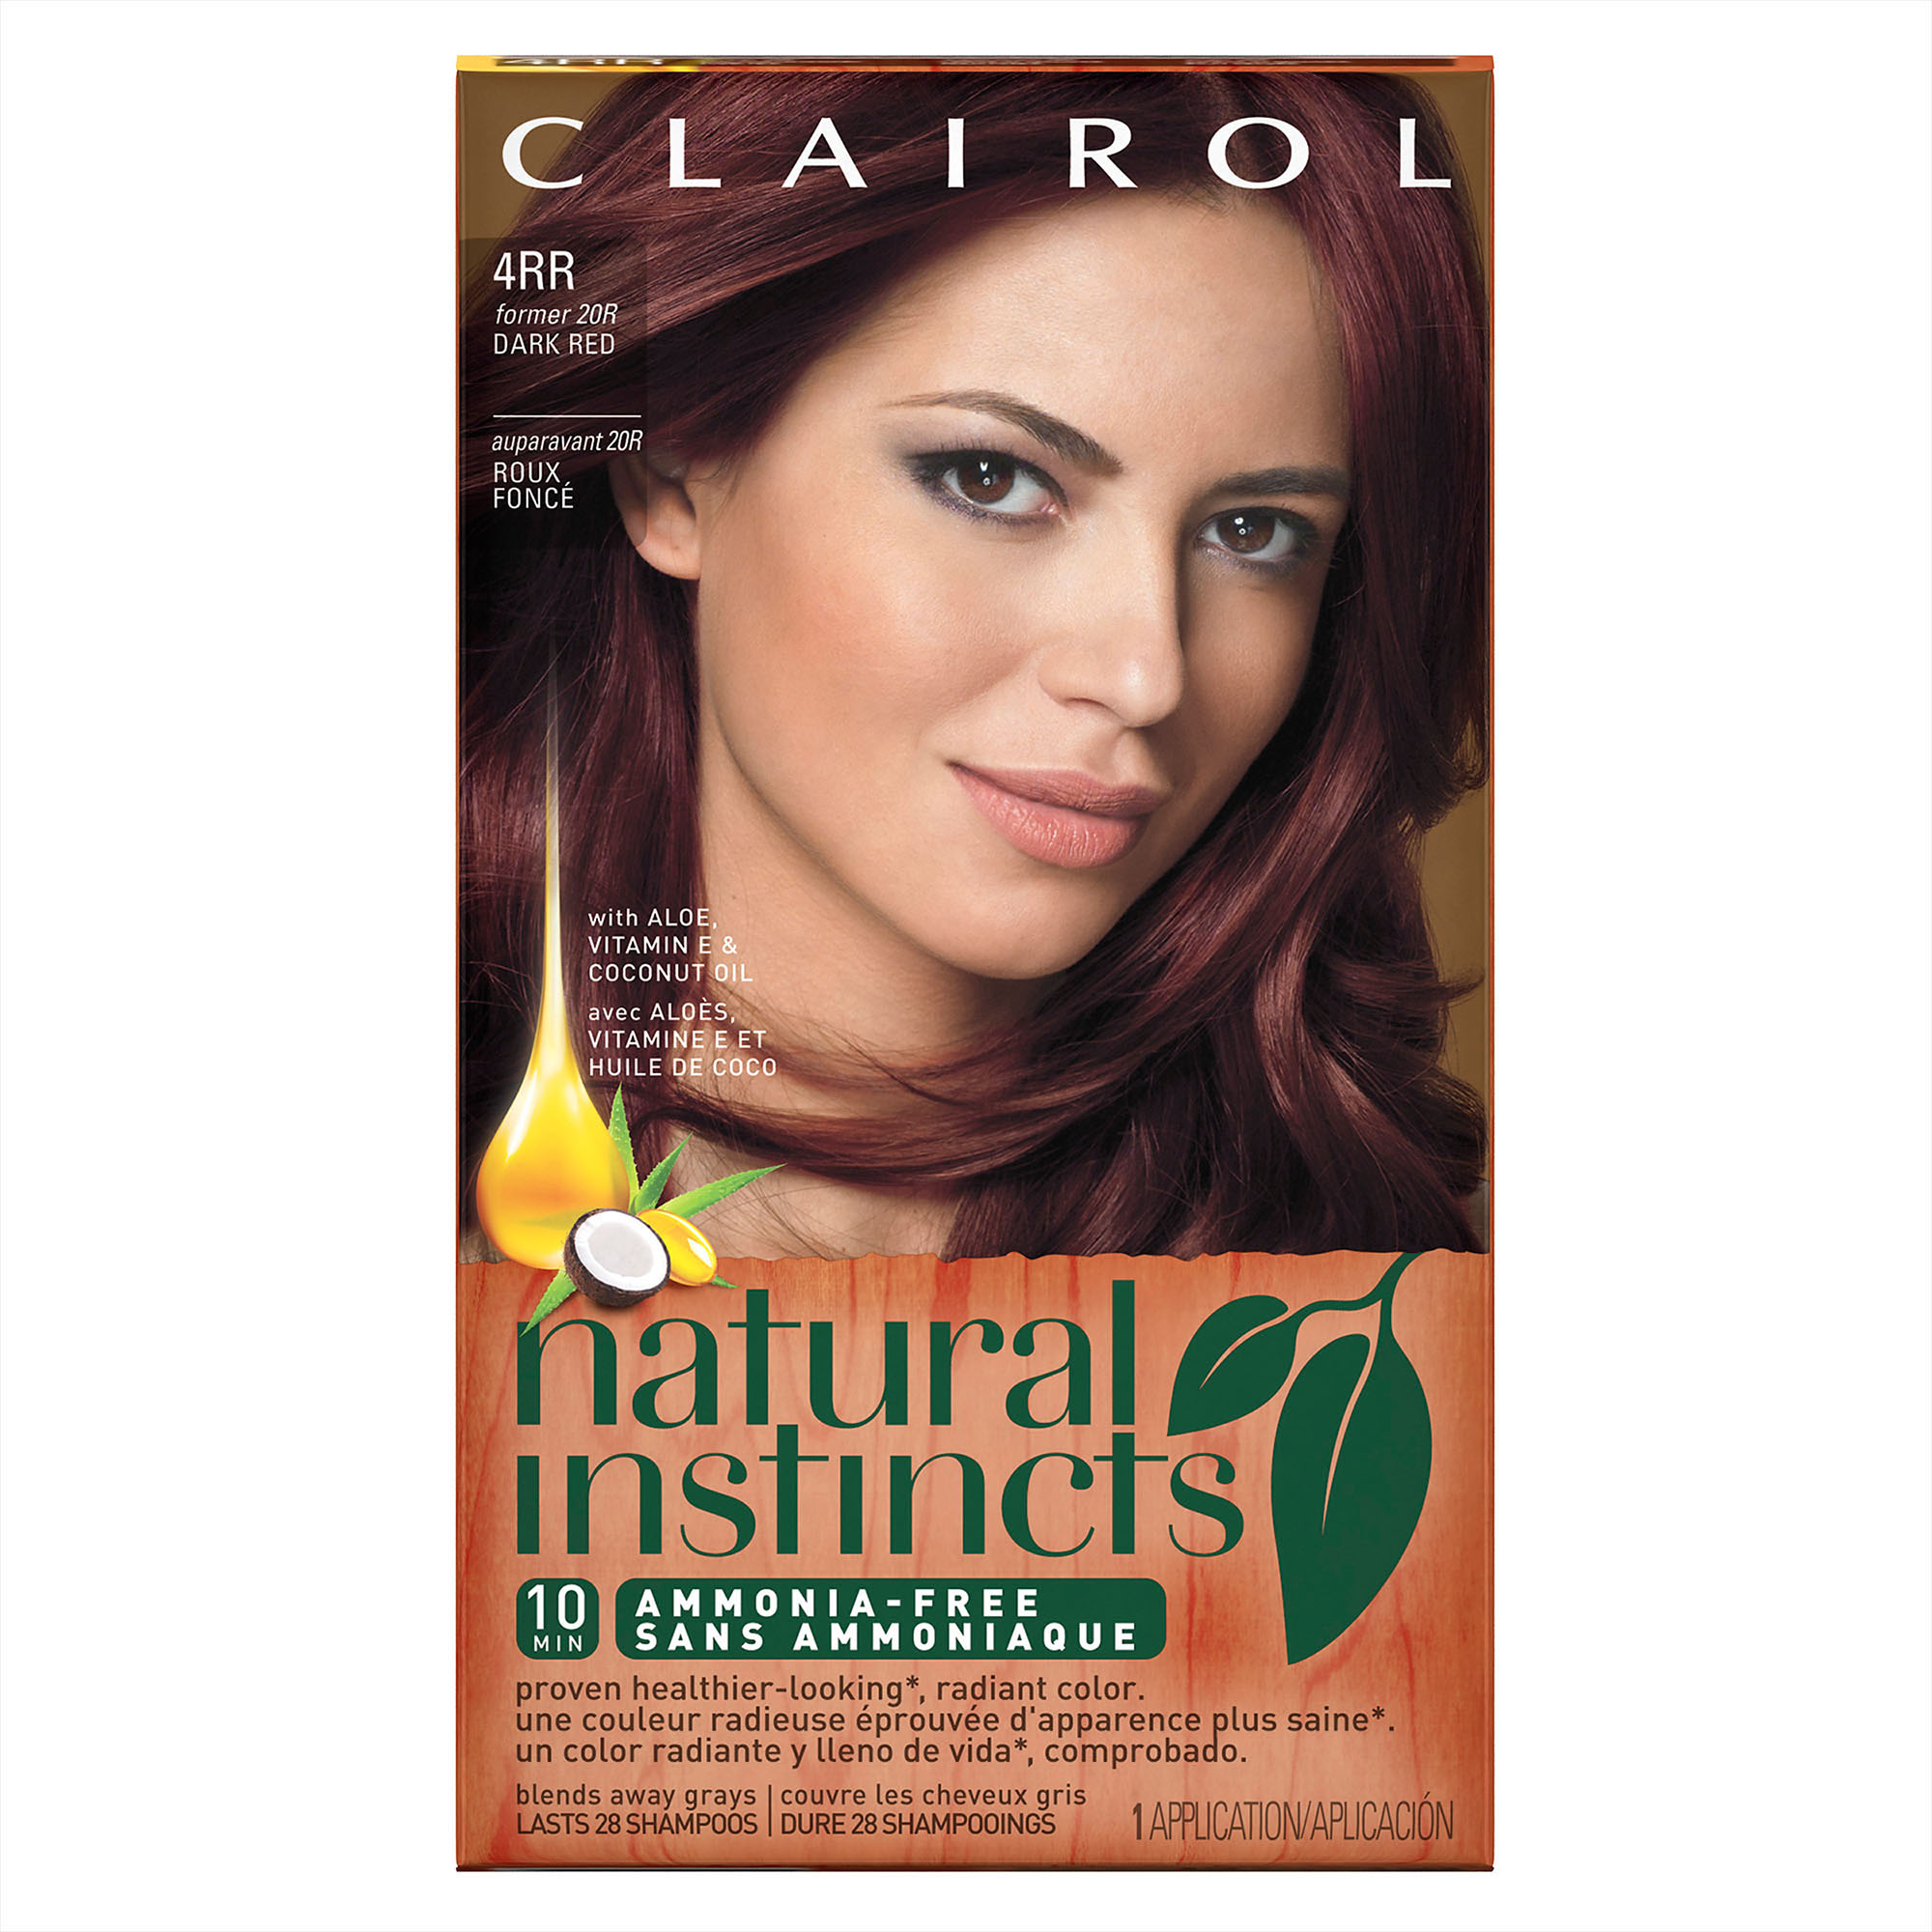 Clairol Natural Instincts Semi Permanent Hair Color, Dark Red, 4RR    Walmart.com